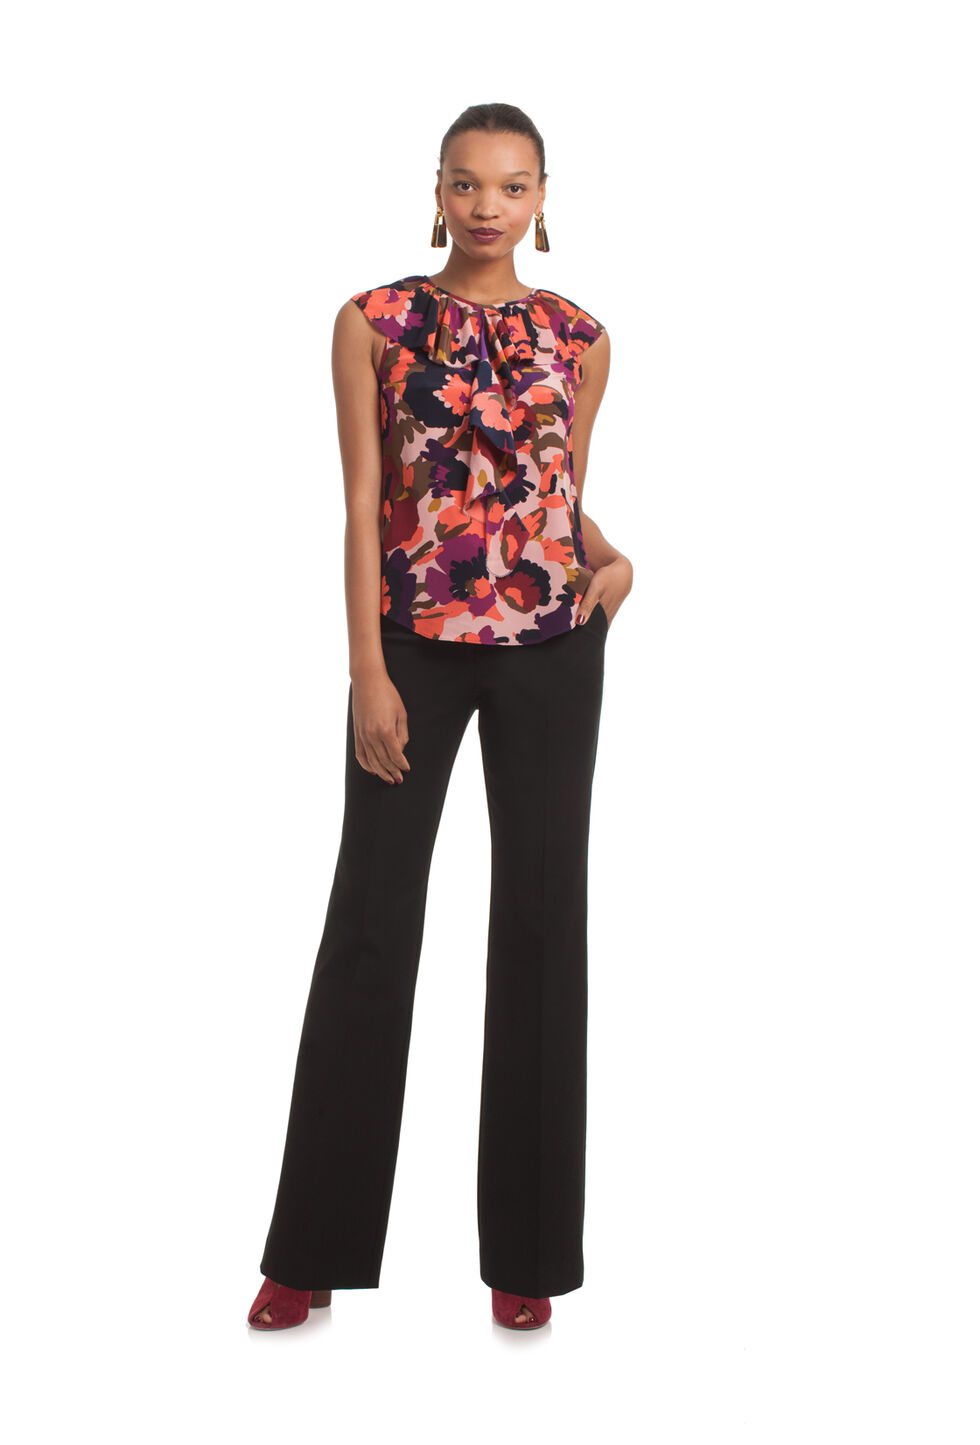 Trina Turk Thorn Top - Multicolor - Size Fit Guide